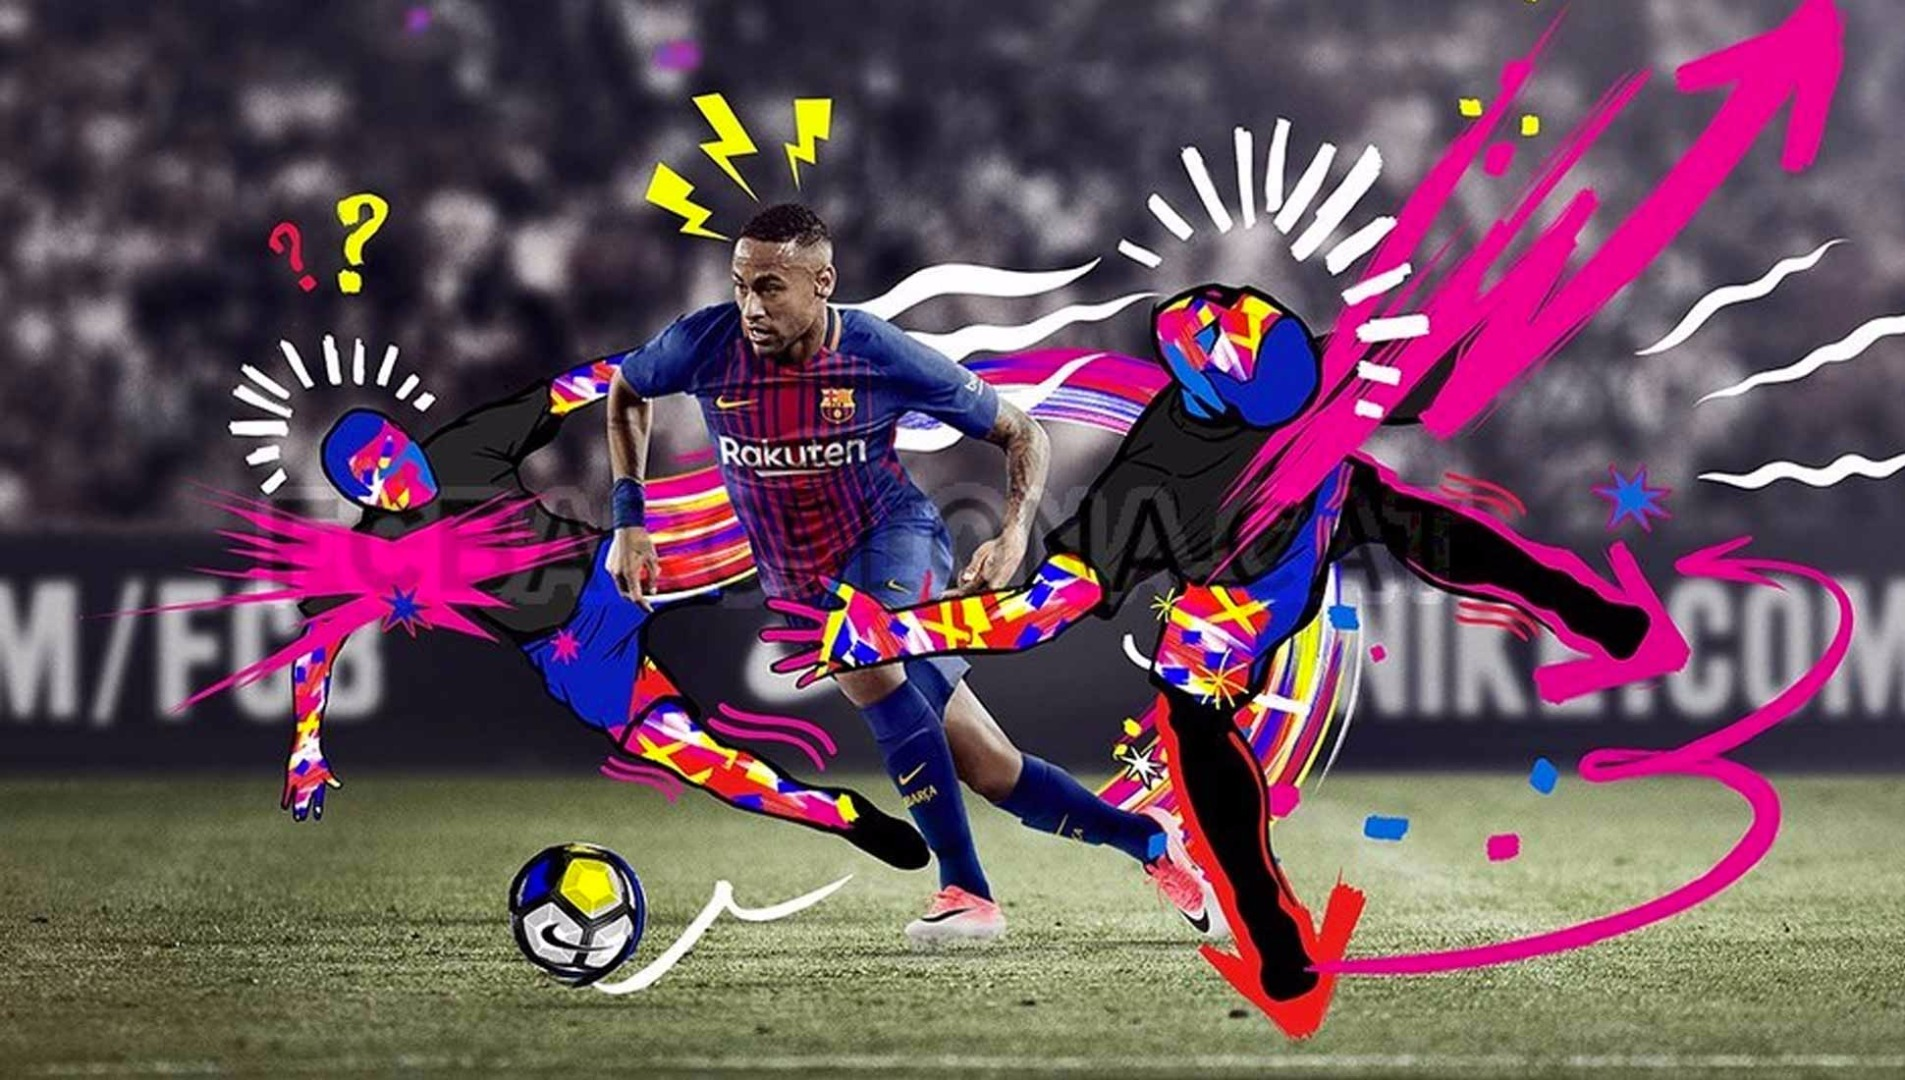 nike launch 2017 18 fc barcelona home kit soccerbible nike launch 2017 18 fc barcelona home